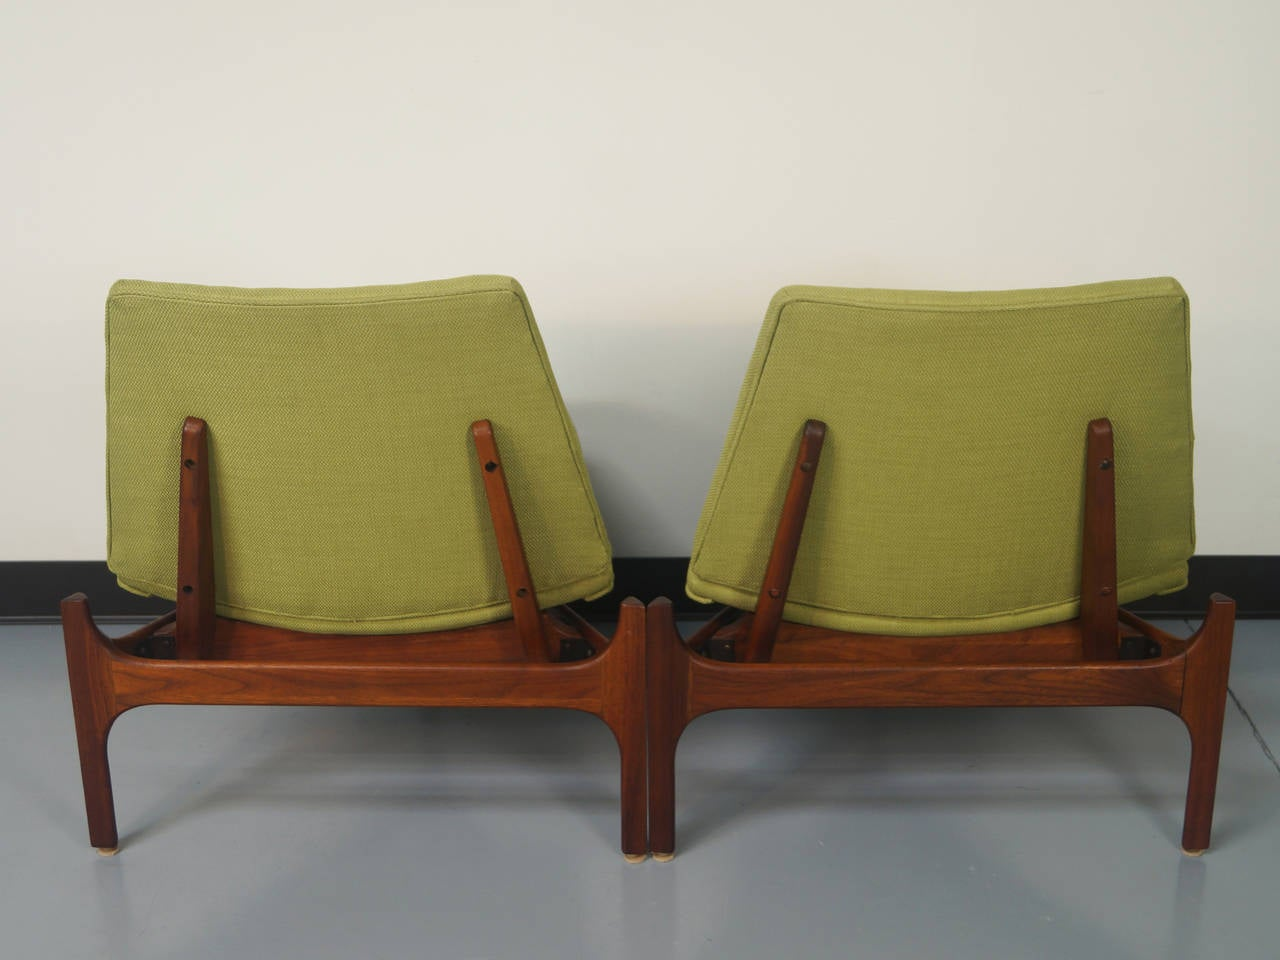 Fabric Vintage Seating Group by John Keal For Sale